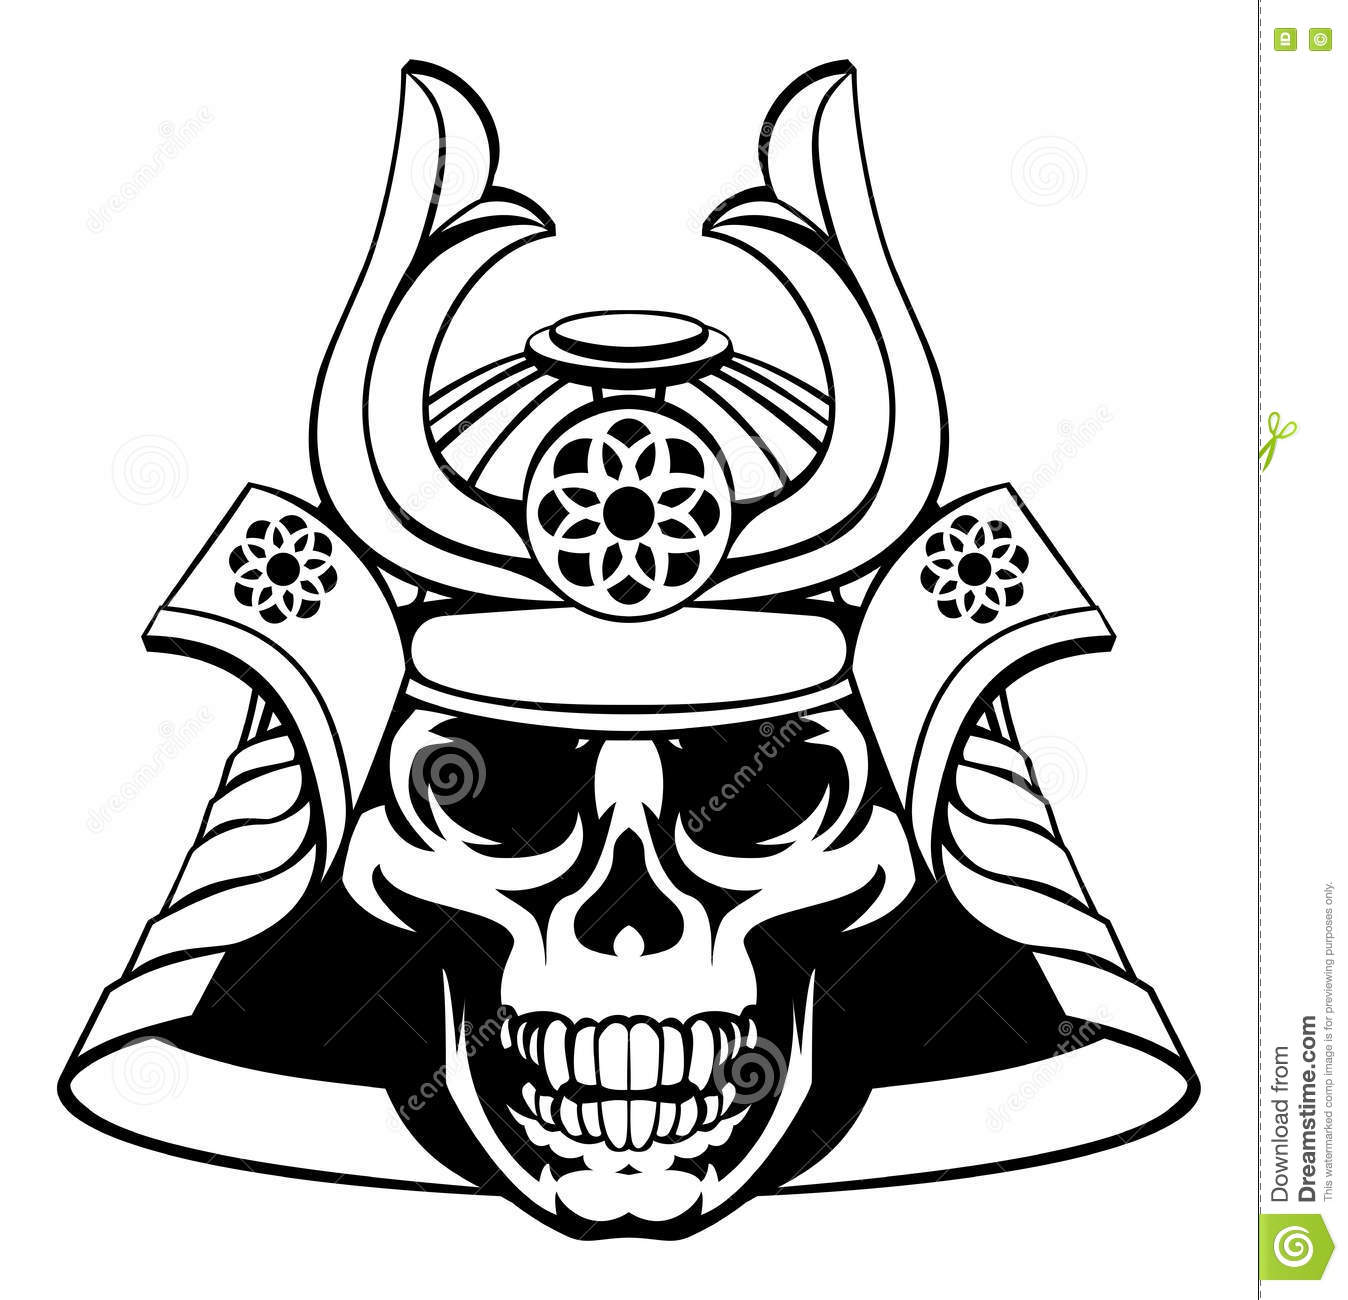 Skull samurai warrior